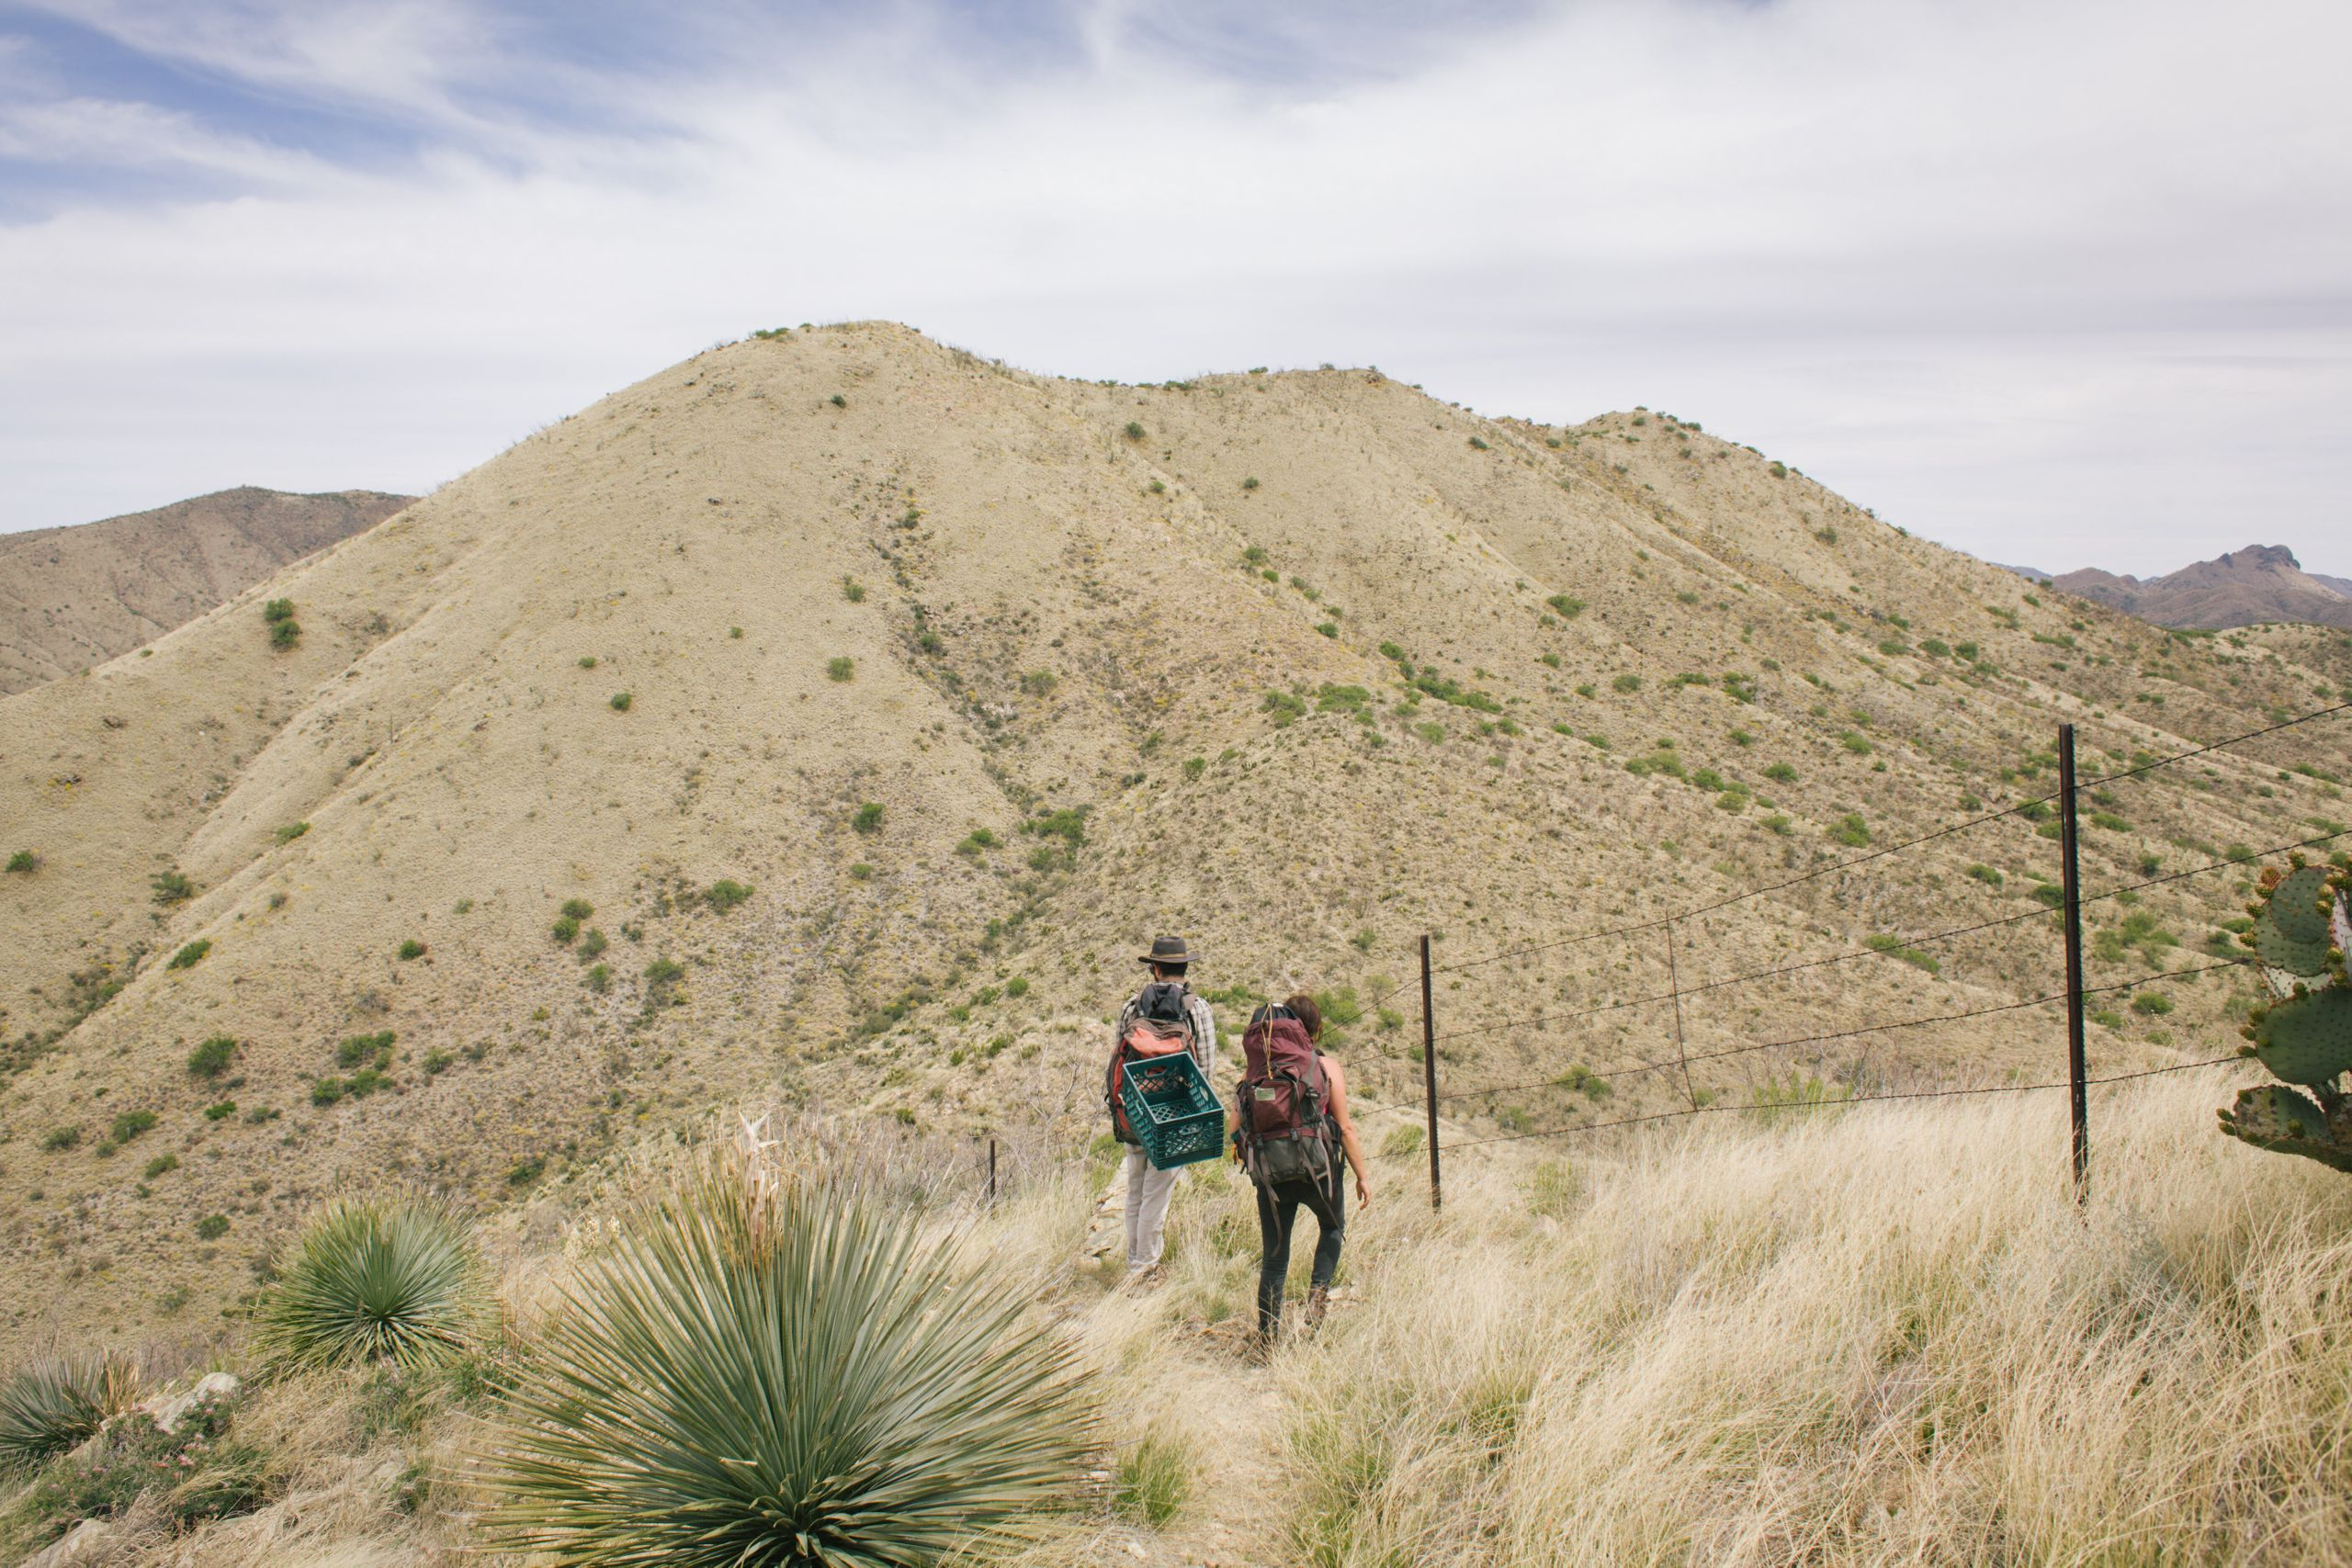 No Más Muertes volunteers Jeff Reinhardt and Esteli Kitchen on a water run in the Altar Valley in Southern Arizona.